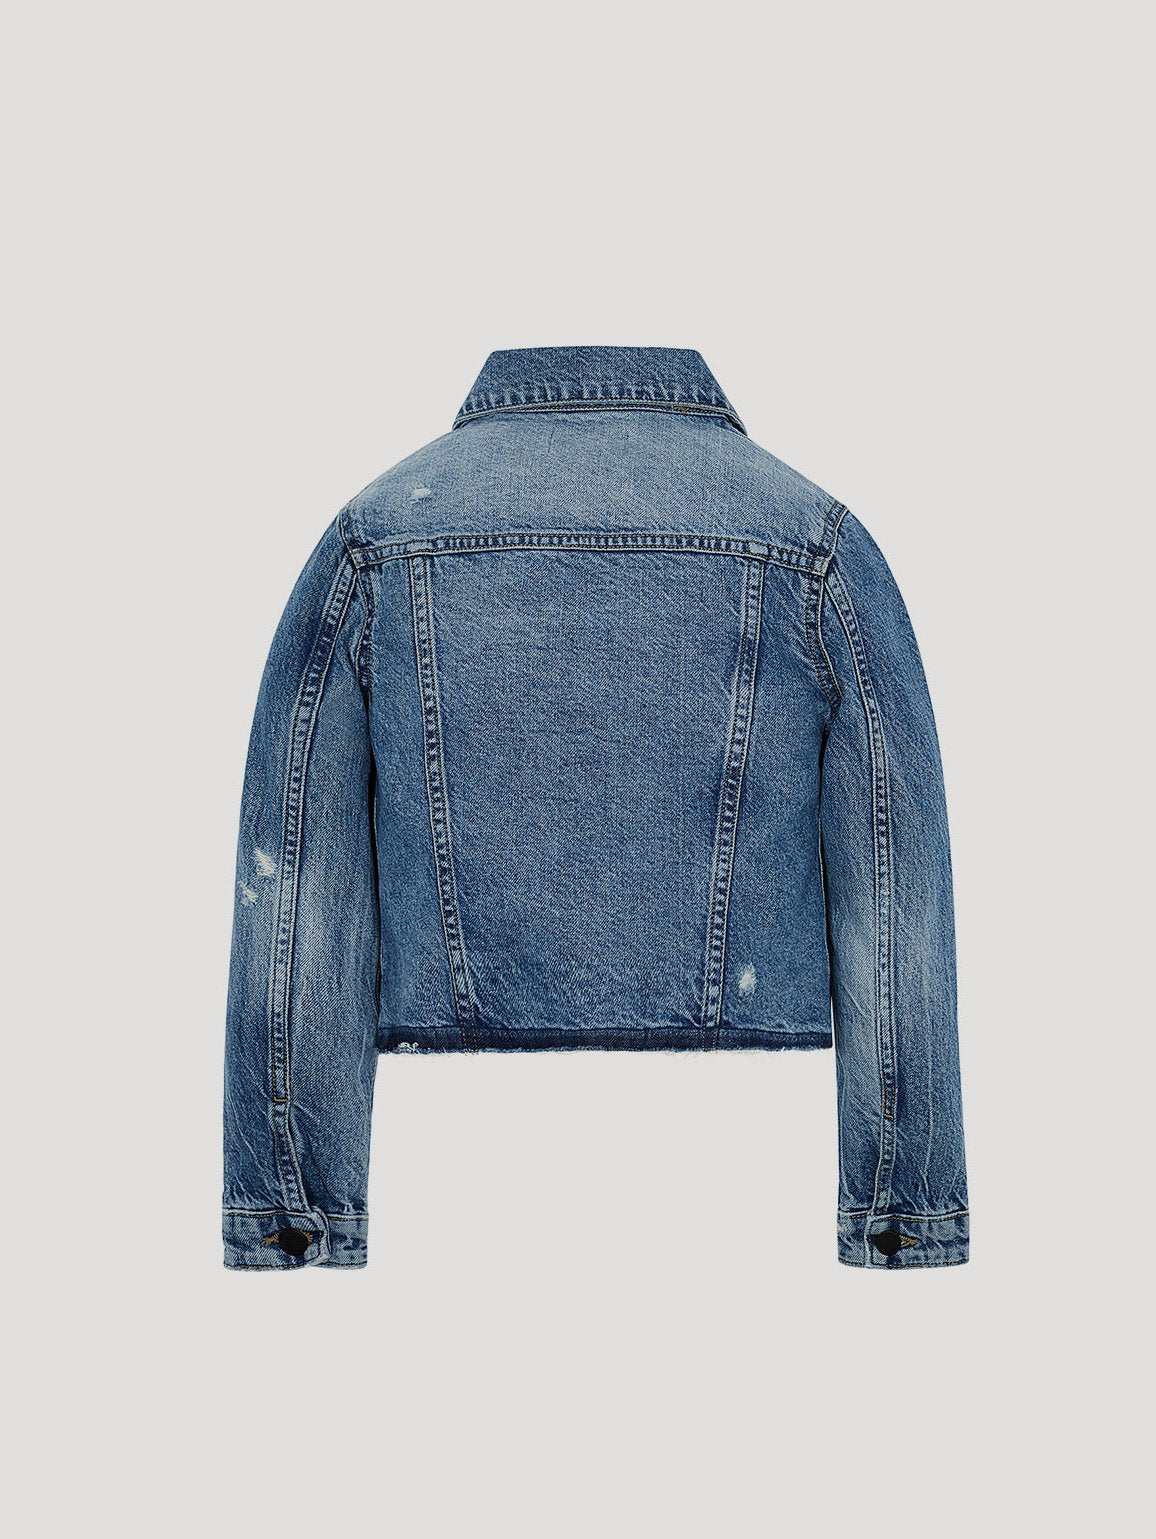 Kids Jacket - Worn-In Denim Jacket - Manning Jacket Vale - DL1961